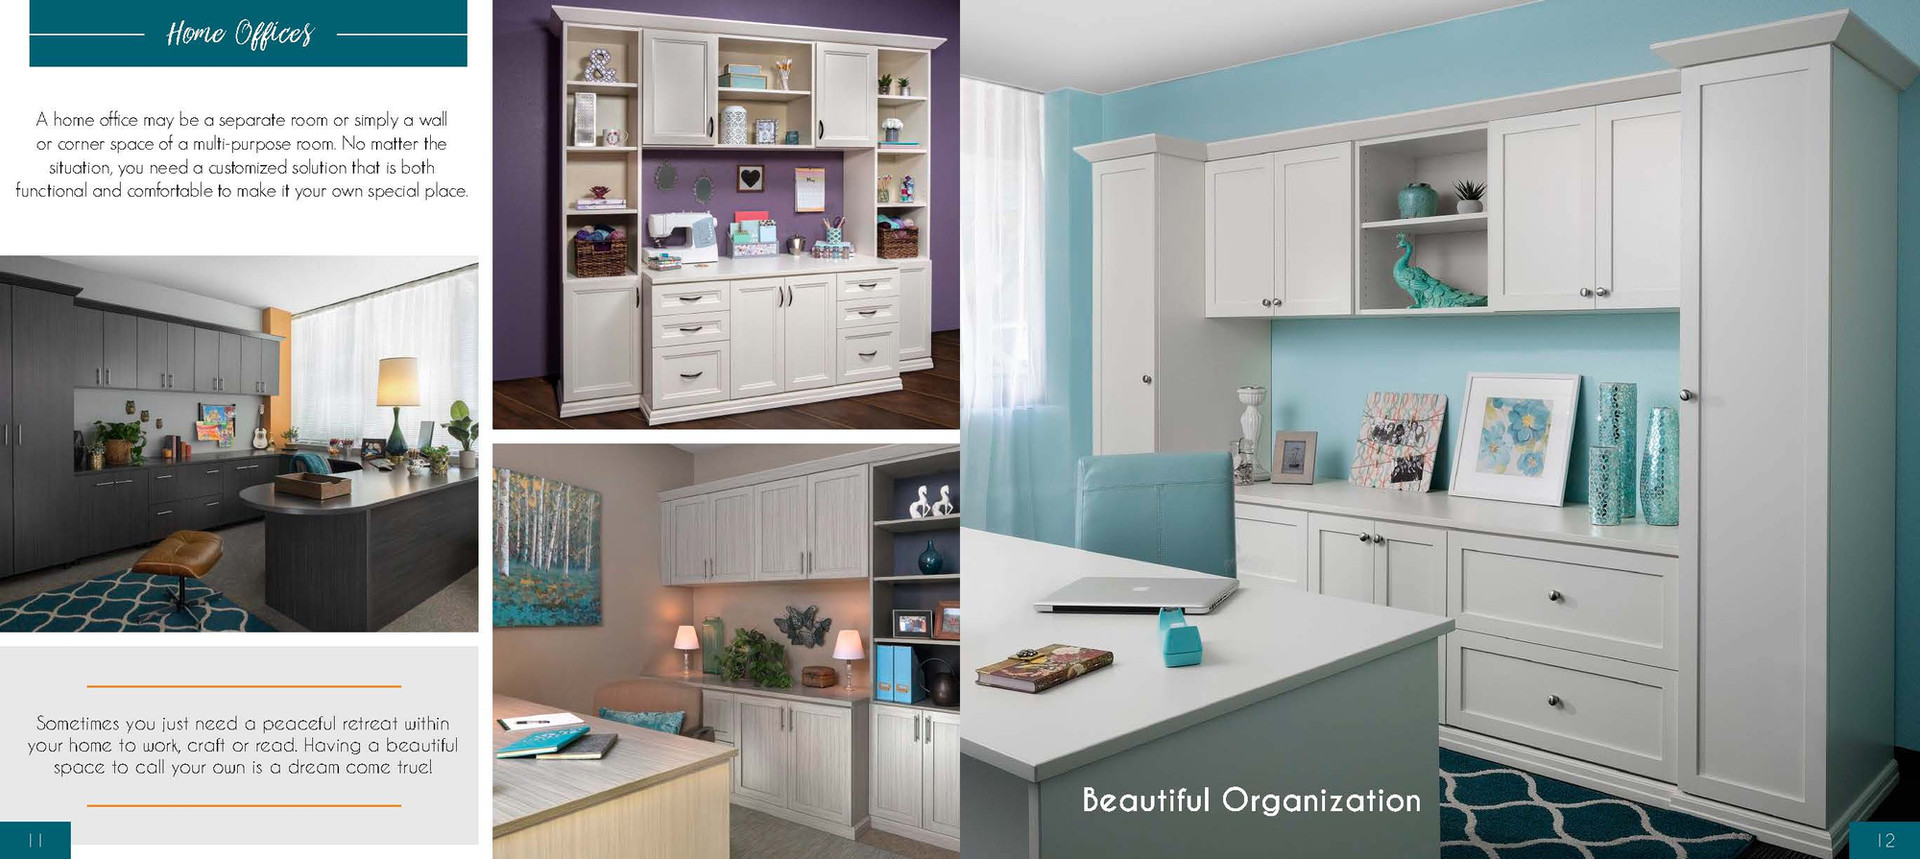 Home Office Cabinets & Design